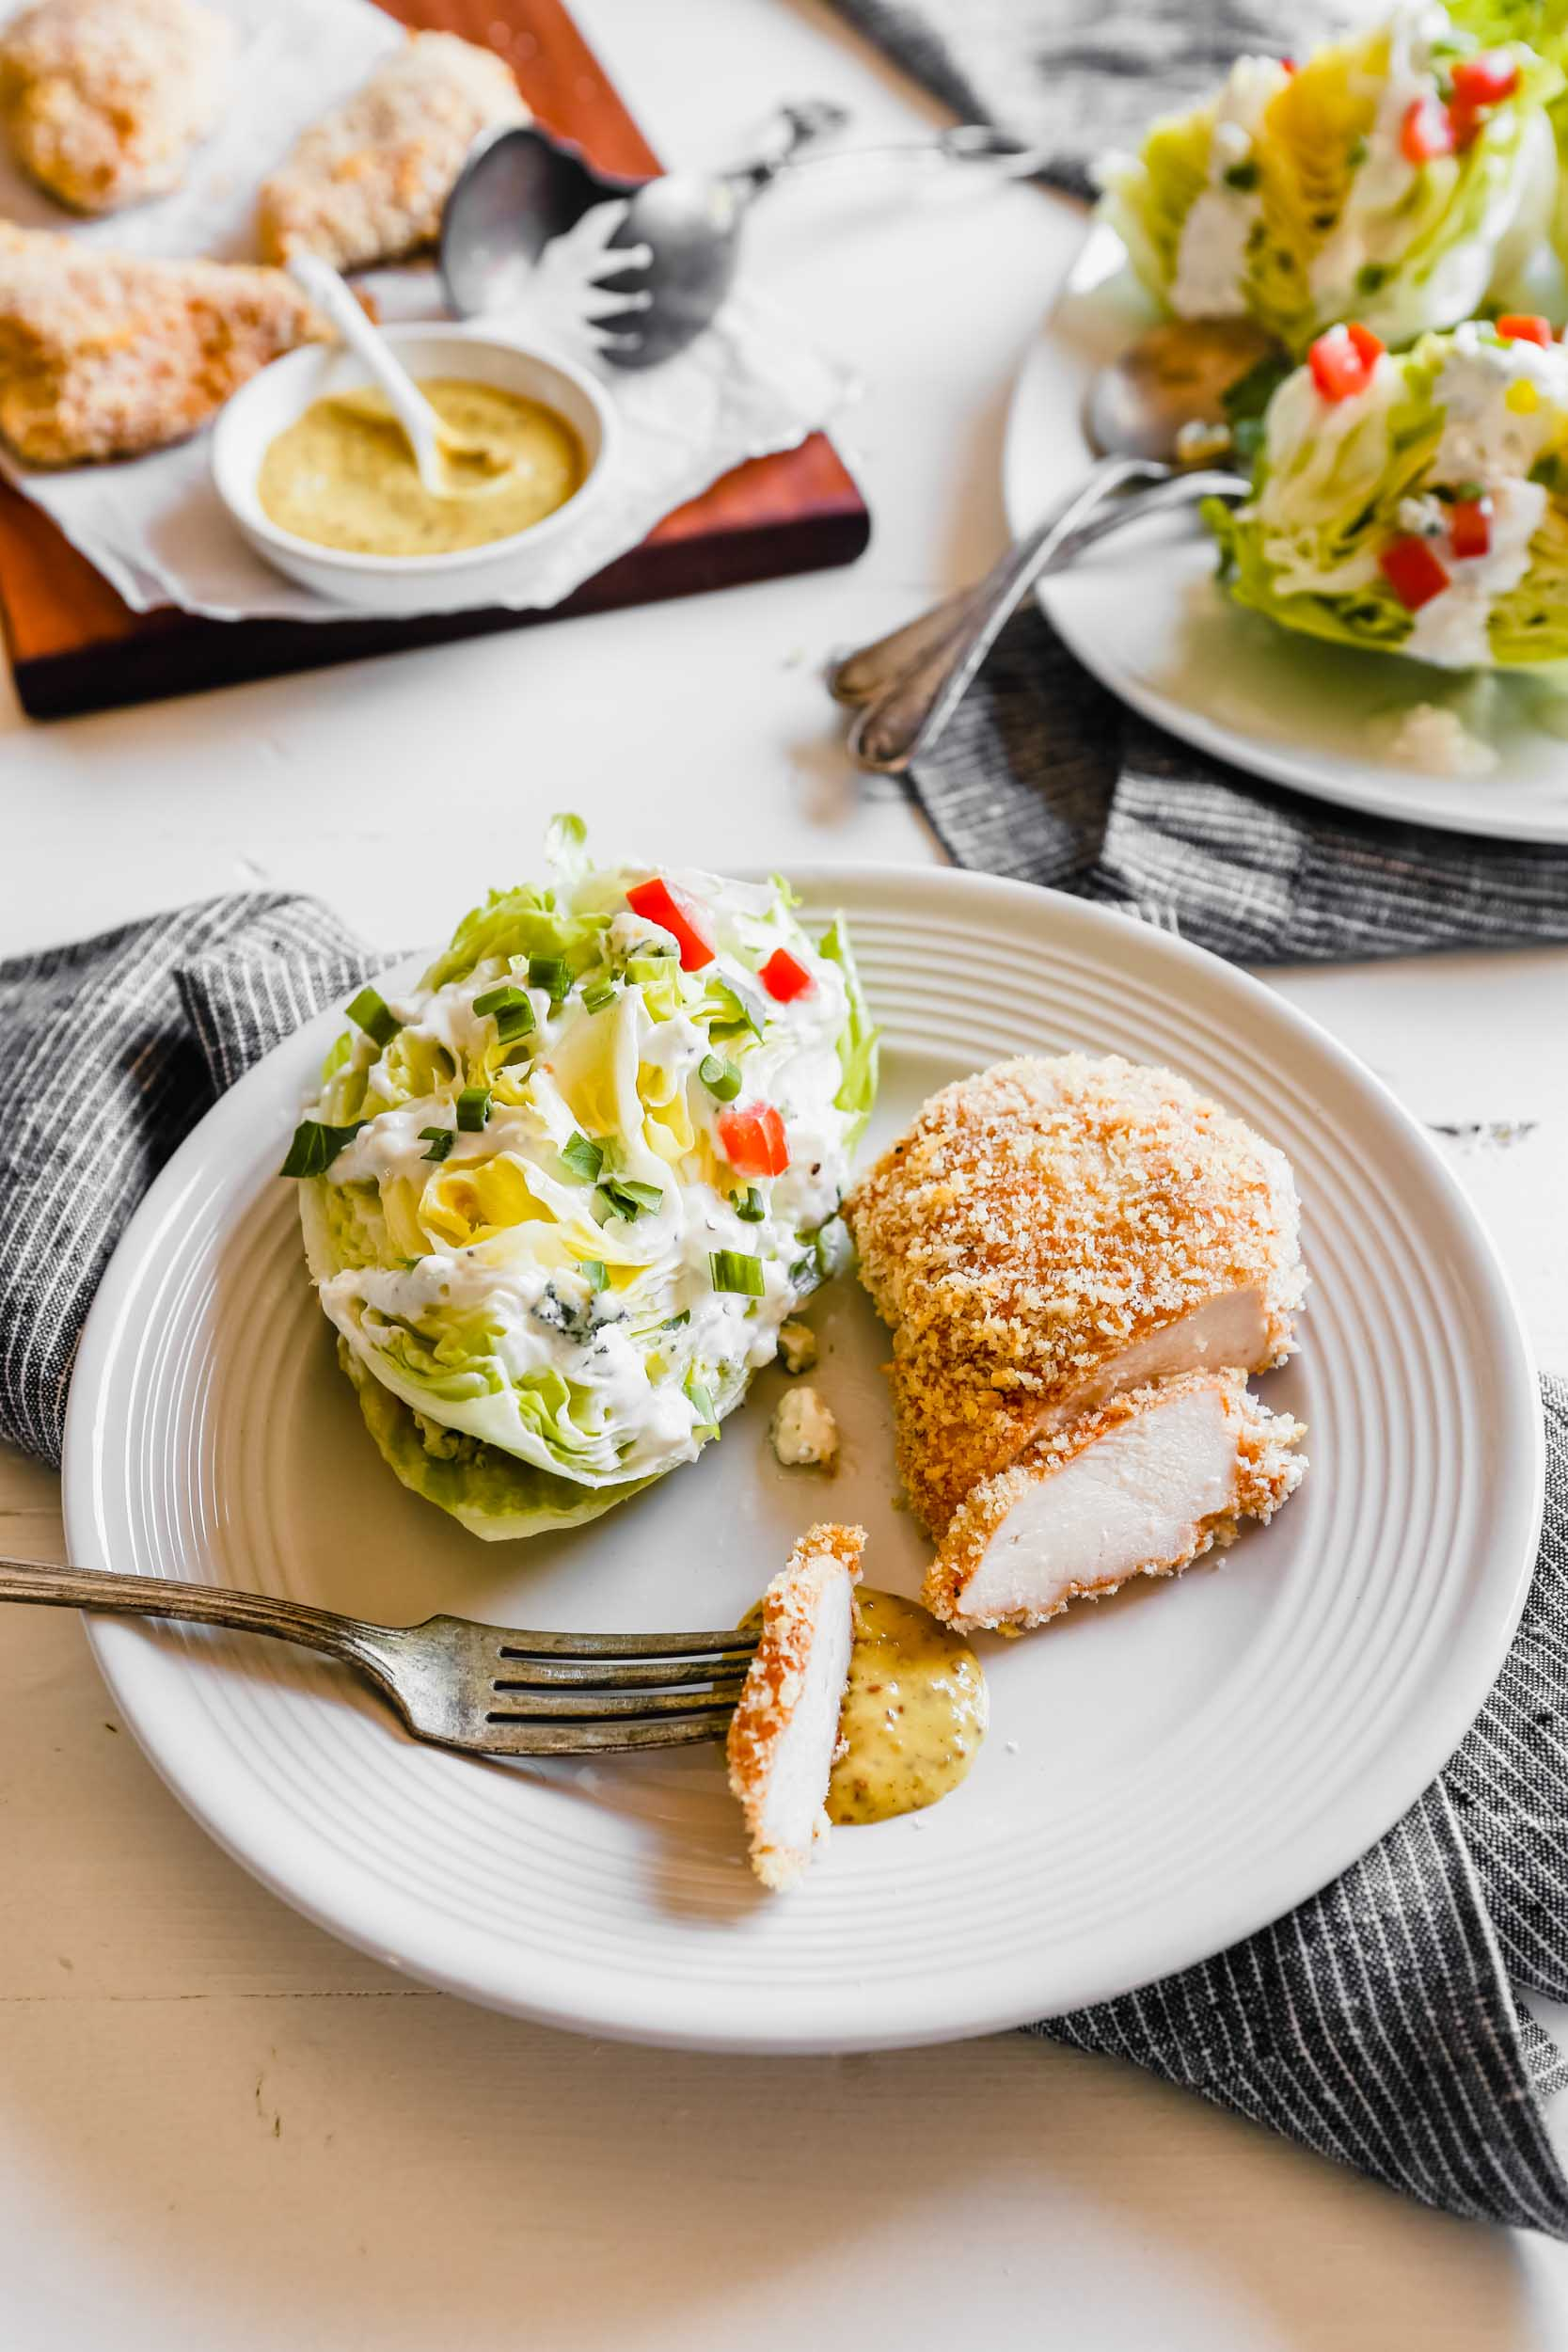 Photograph of oven fried chicken breast being cut on a plate with a wedge salad